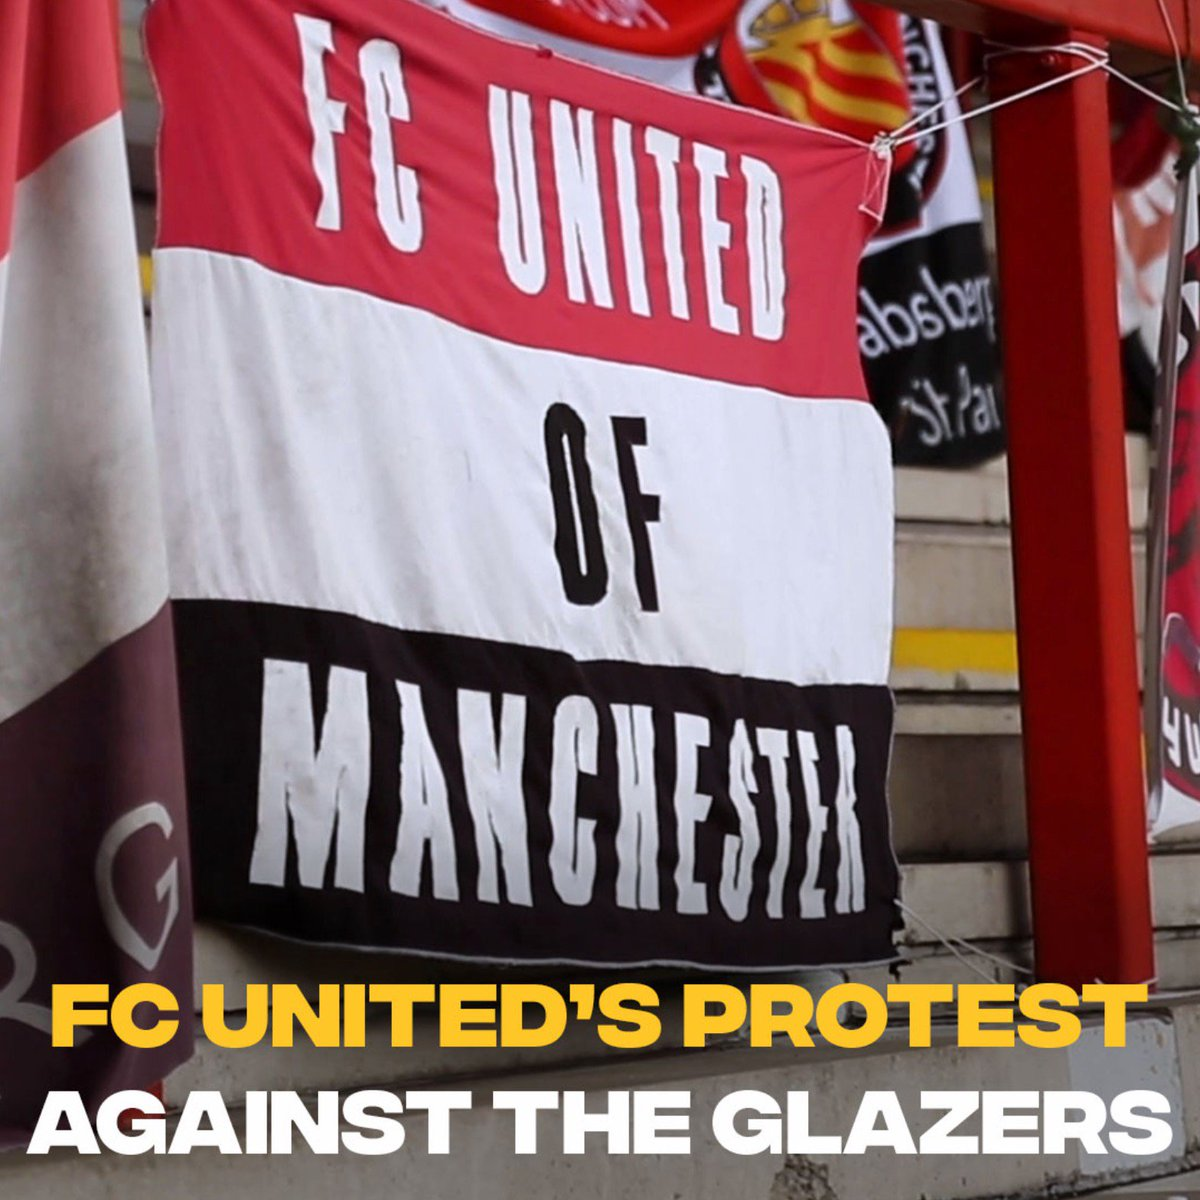 """""""FC United is the only genuine anti-Glazer protest there's ever been.""""  After a miserable start to the season, the frustration towards Manchester United's owners is growing. @FCUnitedMcr is the club for disillusioned fans. https://t.co/MtPIh1ru03"""